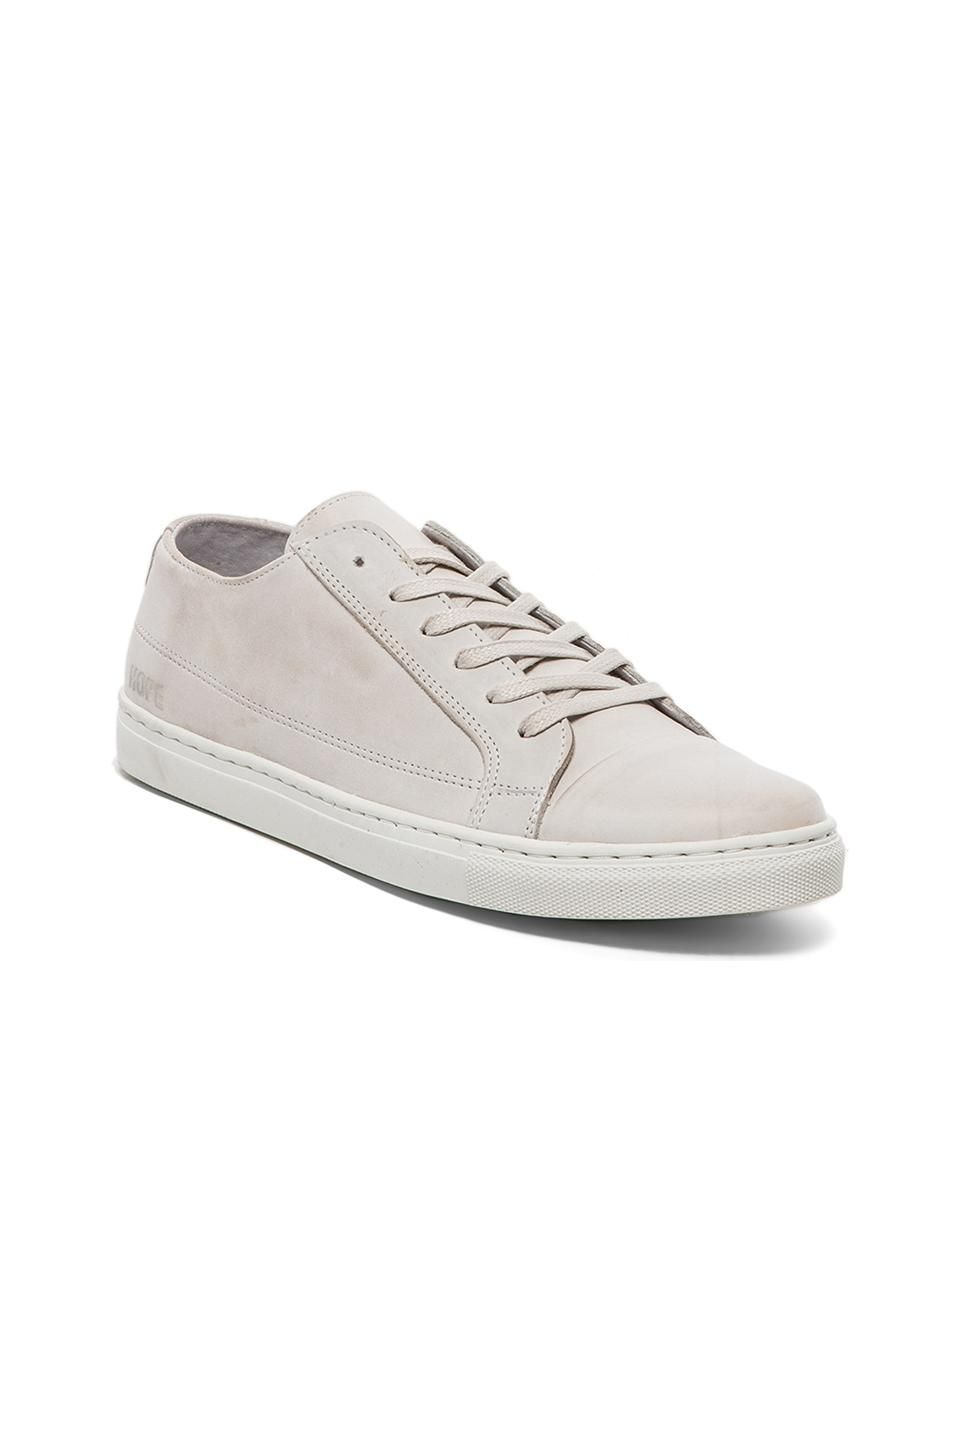 c188f86caff2 Hope - Bill Sneaker in White - 212